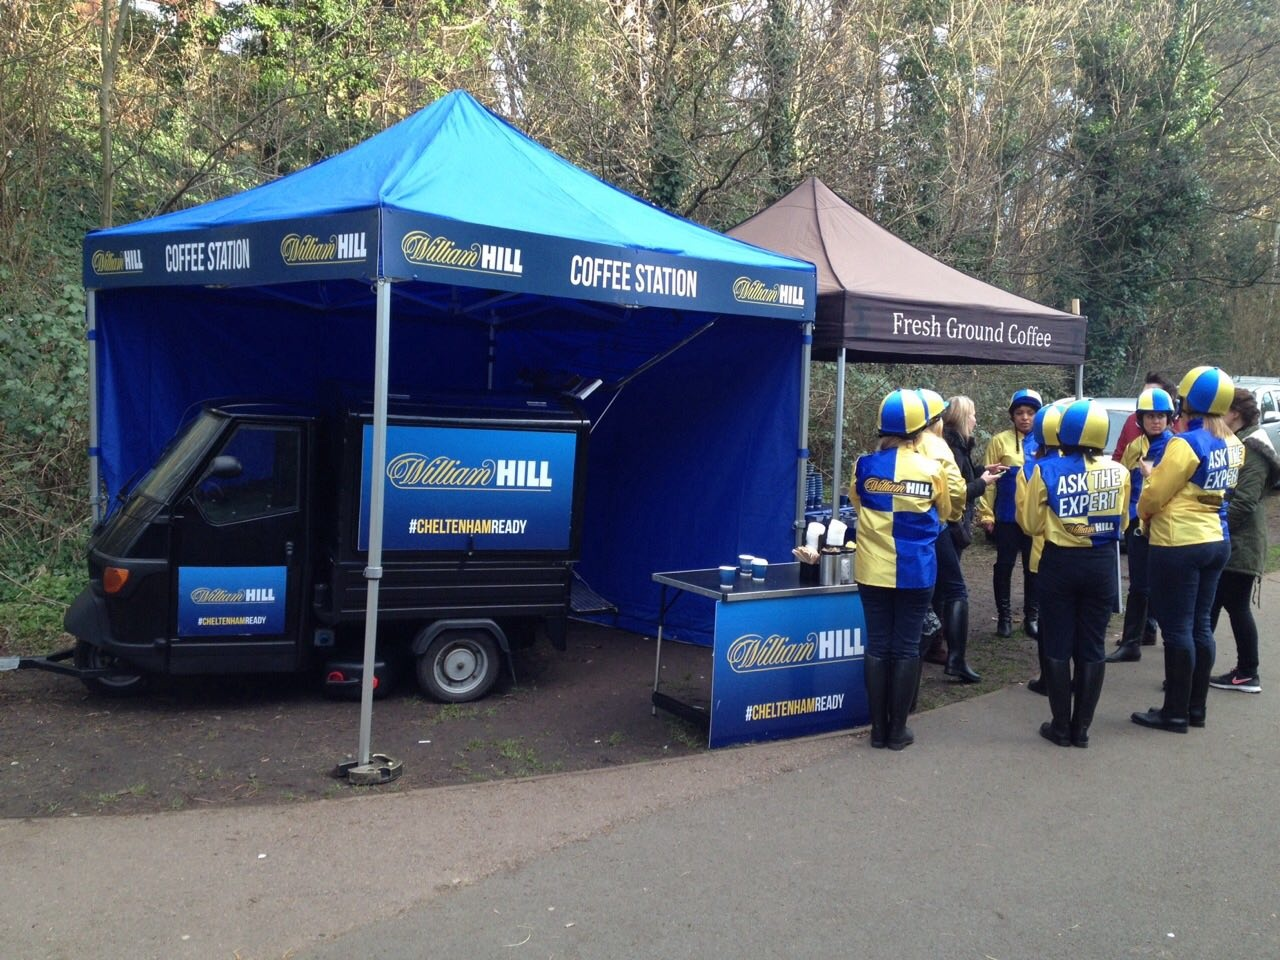 William Hill corporate branded mobile coffee van by The Mobile Coffee Bean